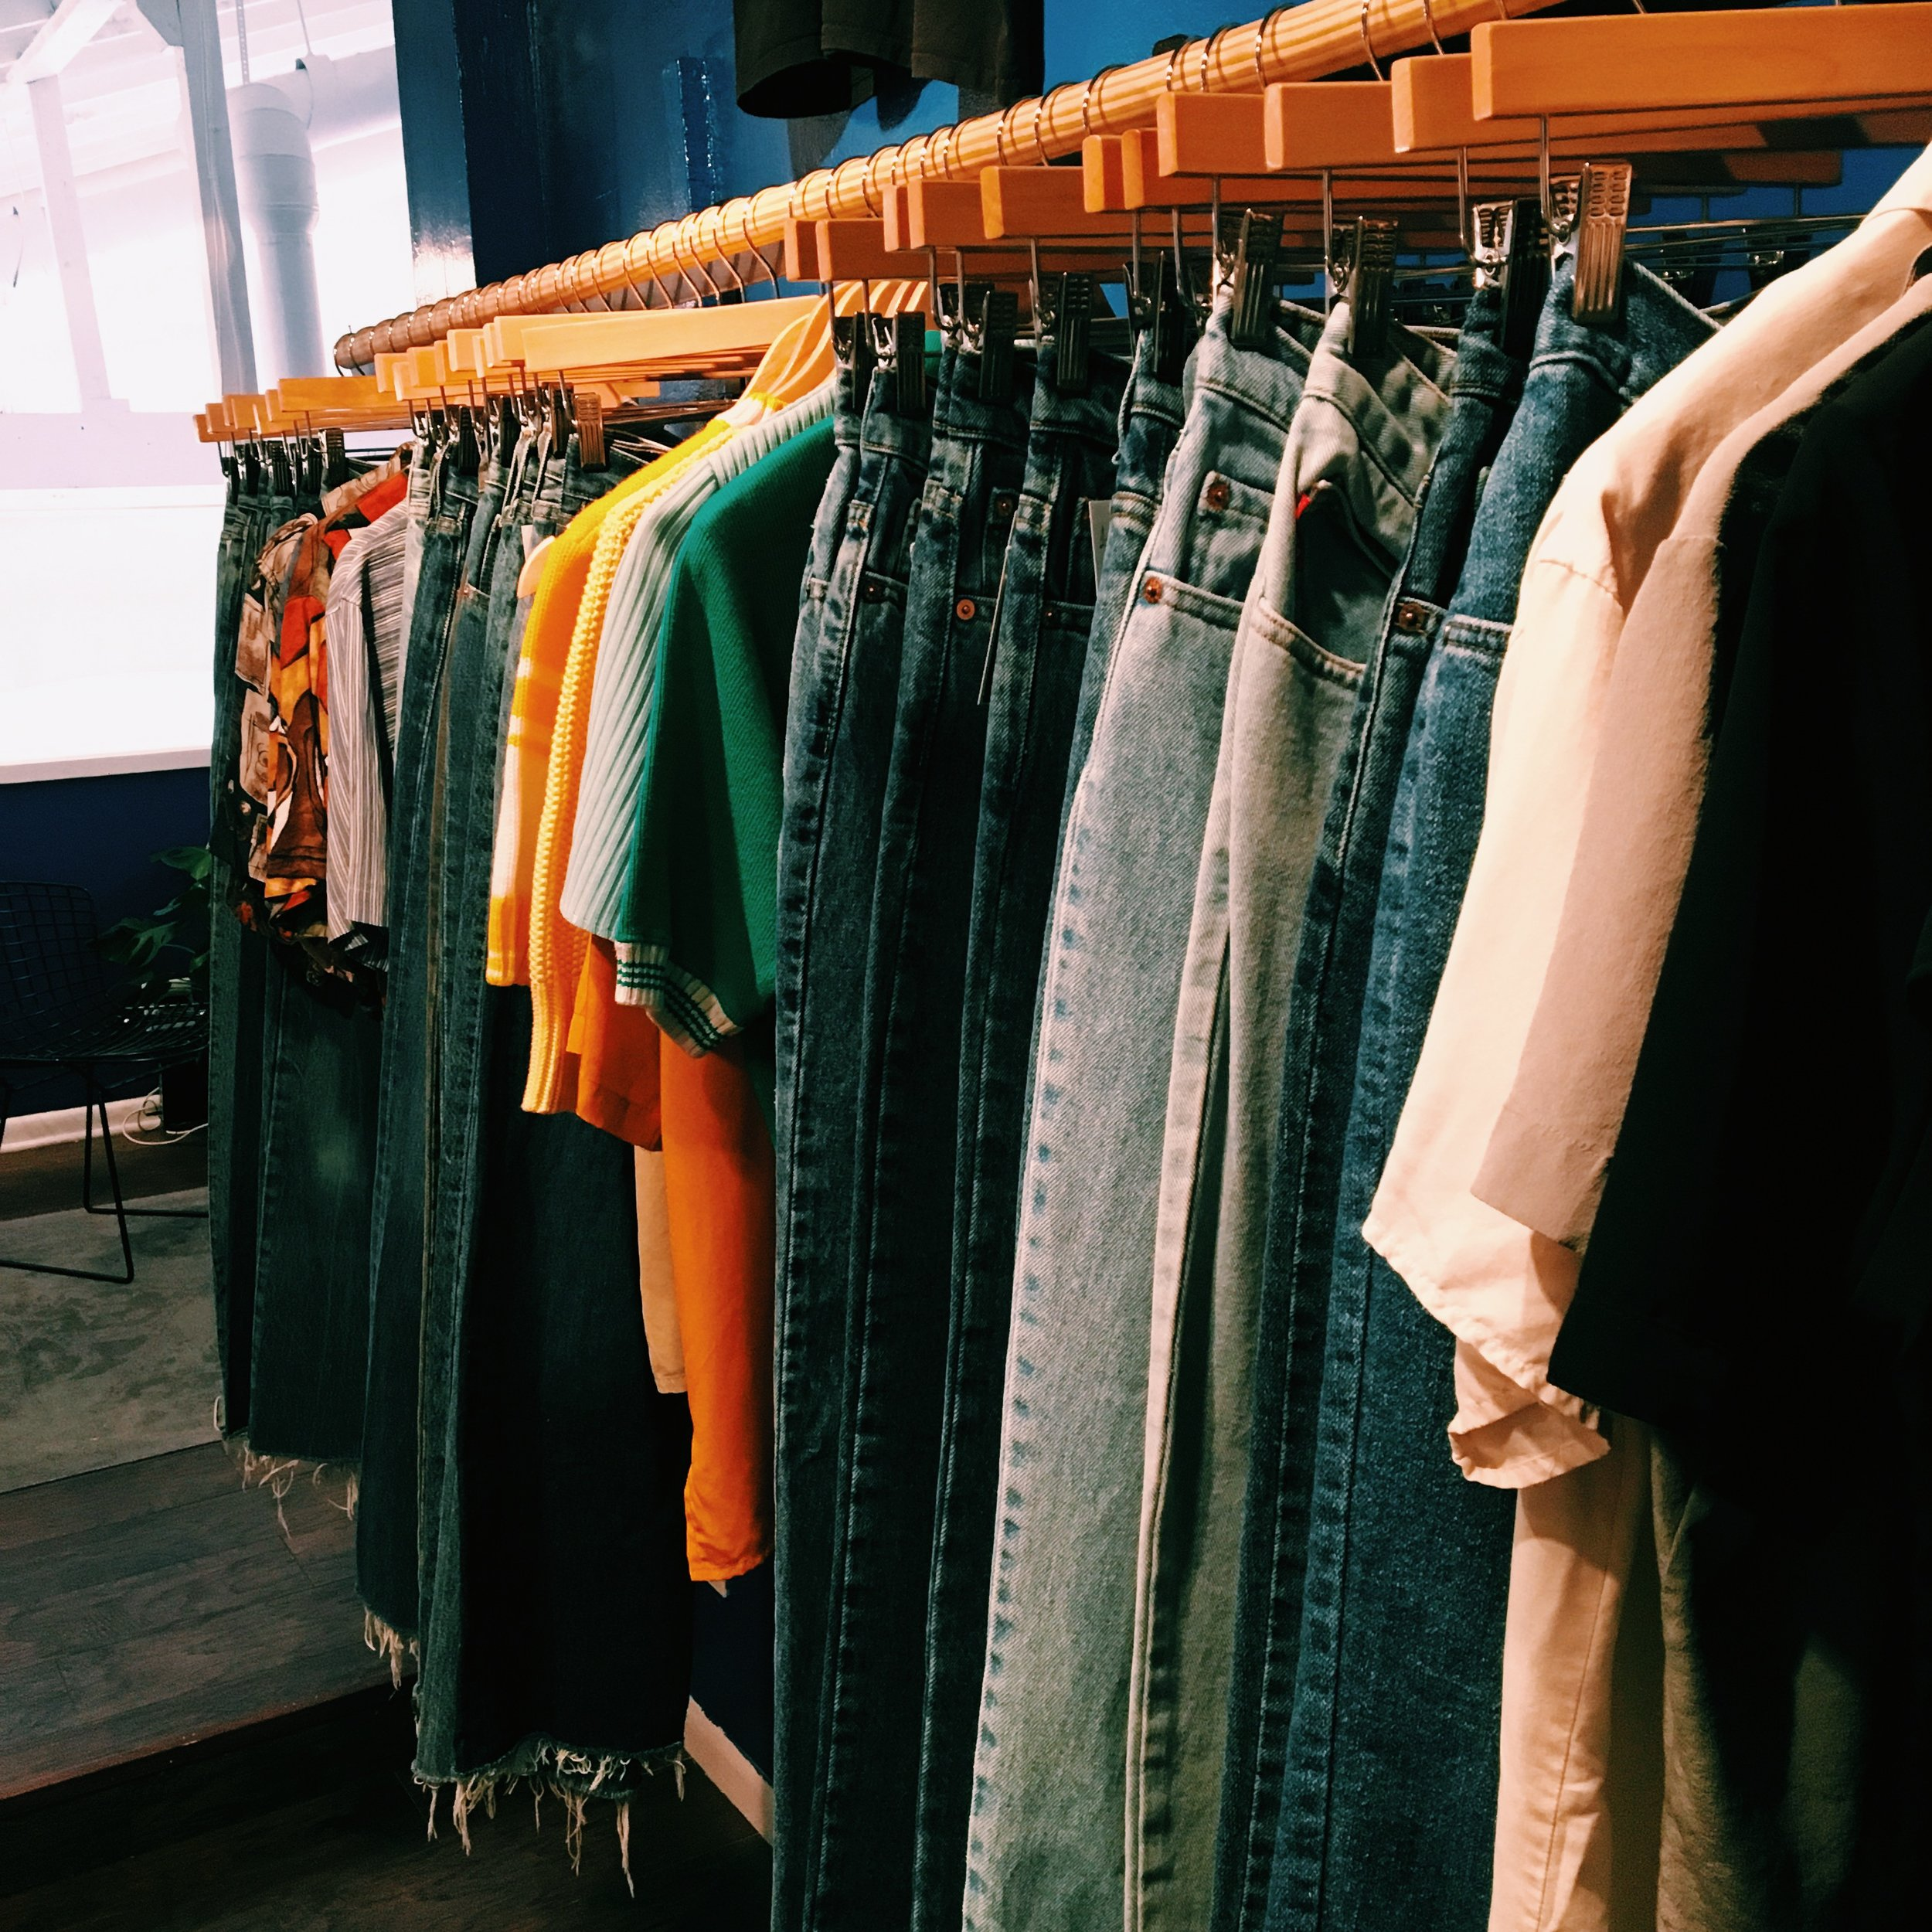 Looking to purchase some new items, but want to be mindful that what you buy is environmentally friendly? Check out Austin's best vintage shops like Passport Vintage on South 1st Street.